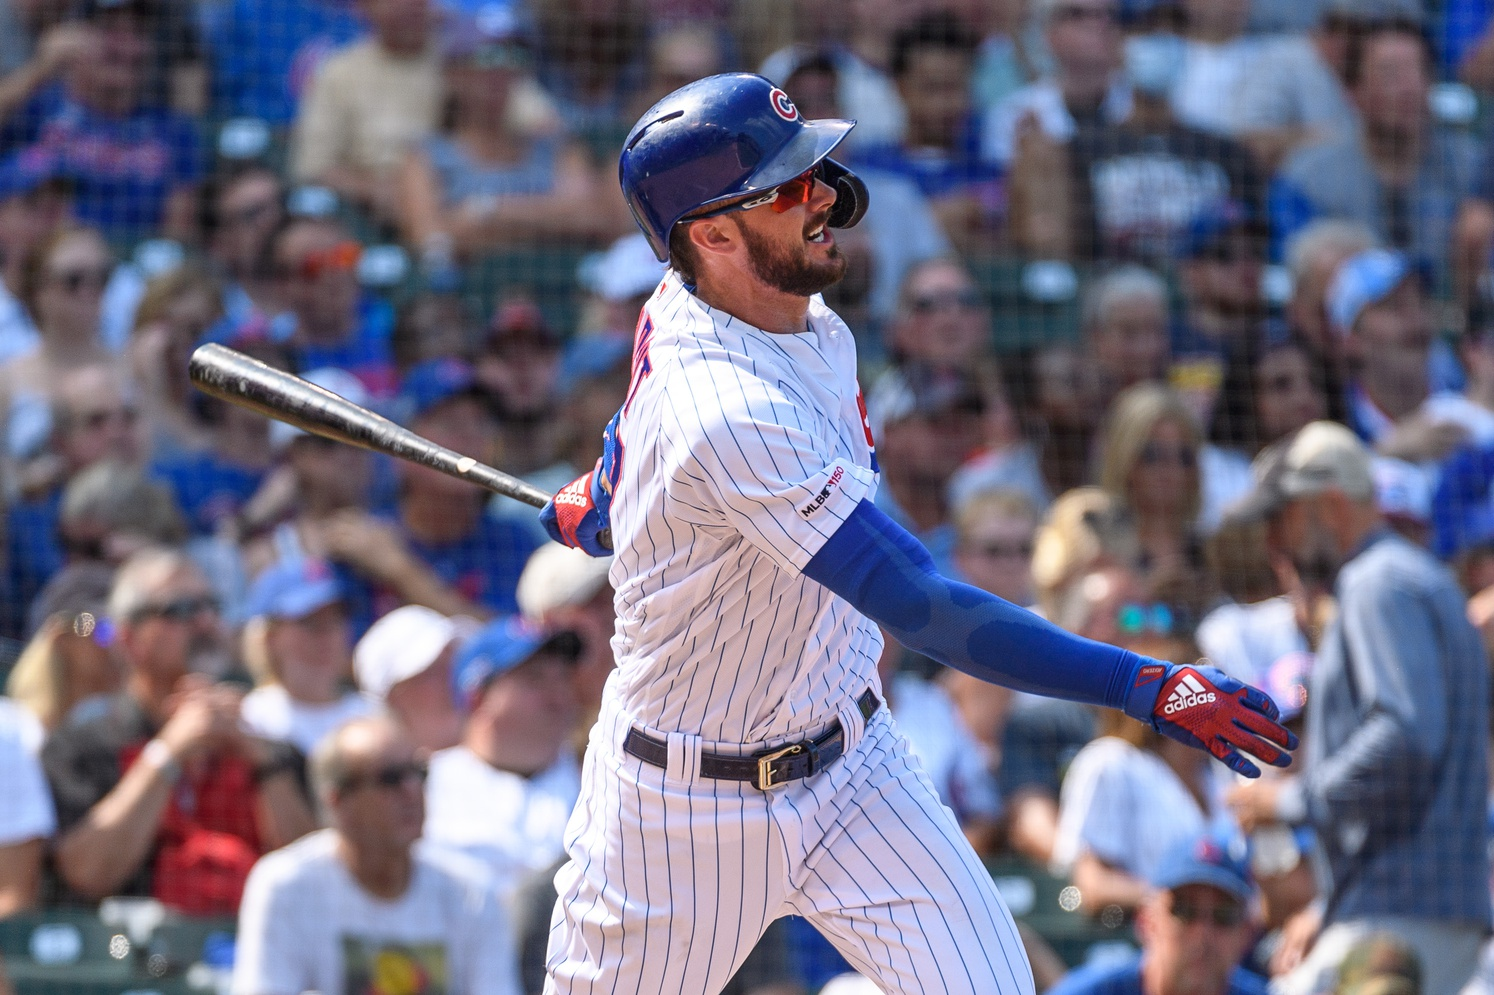 MLB News: Phillies Reportely Have Interest in Cubs' Kris Bryant